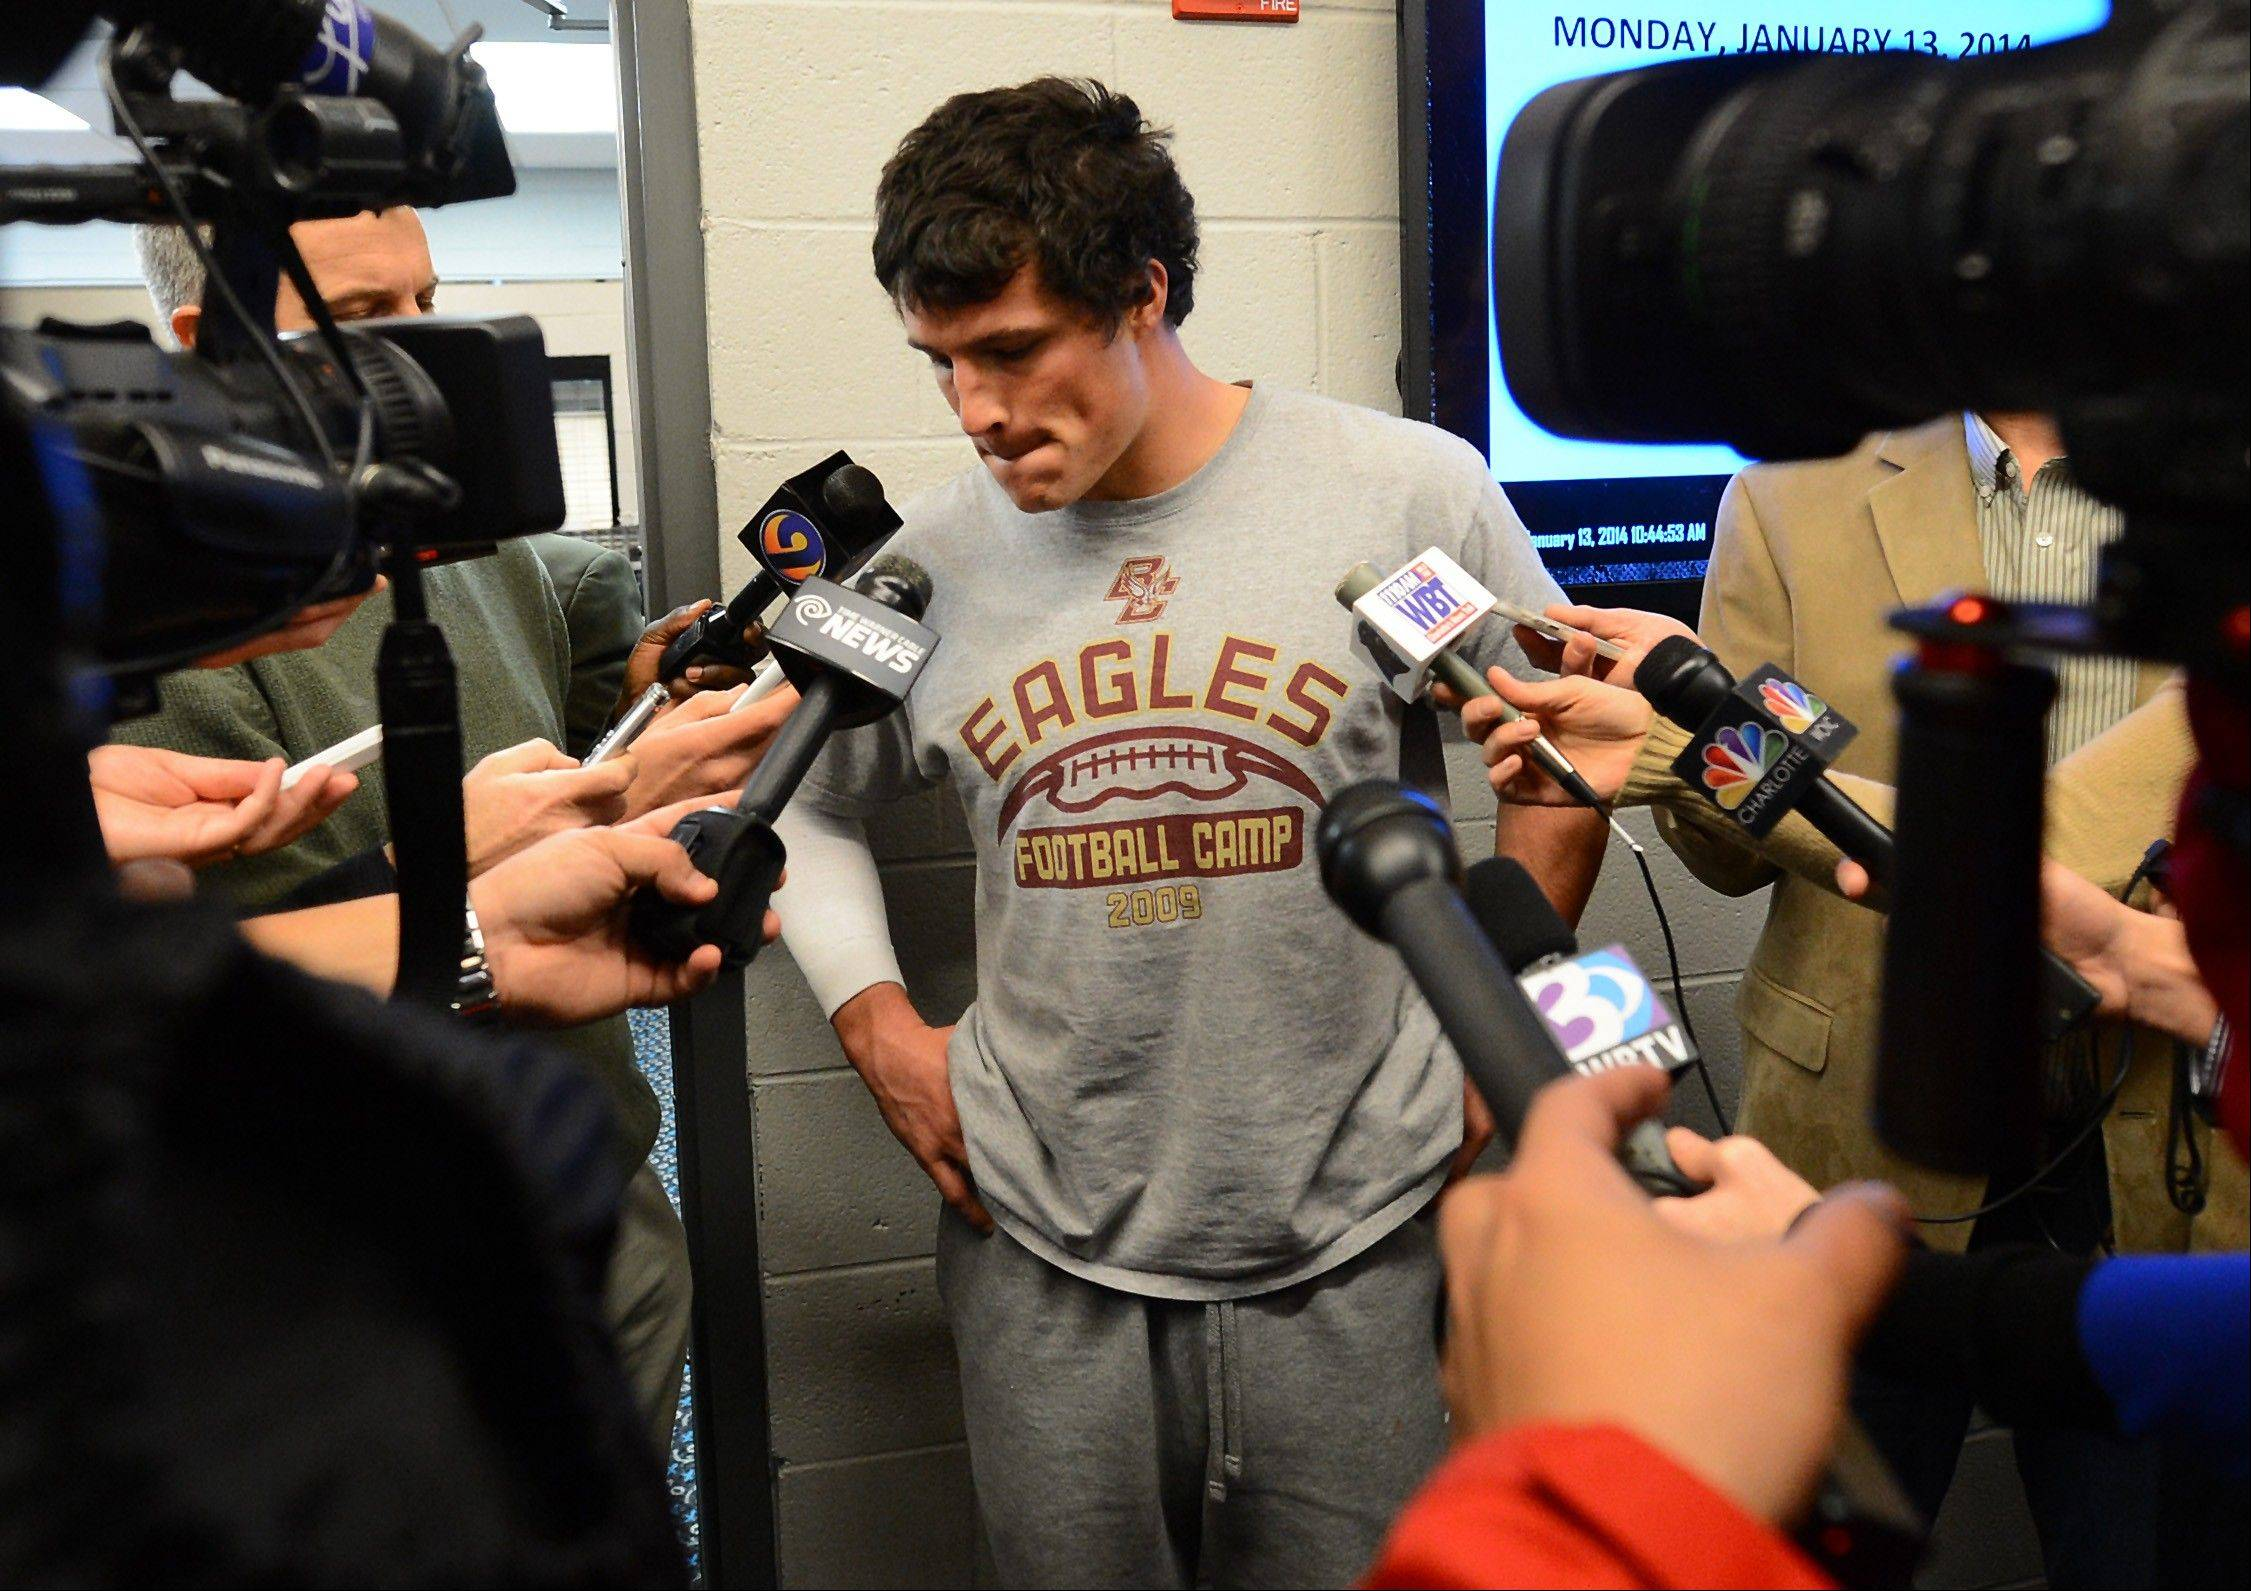 Carolina Panthers linebacker Luke Kuechly talks with reporters as he and his teammates clean out their lockers on Monday at Bank of America Stadium in Charlotte, N.C.